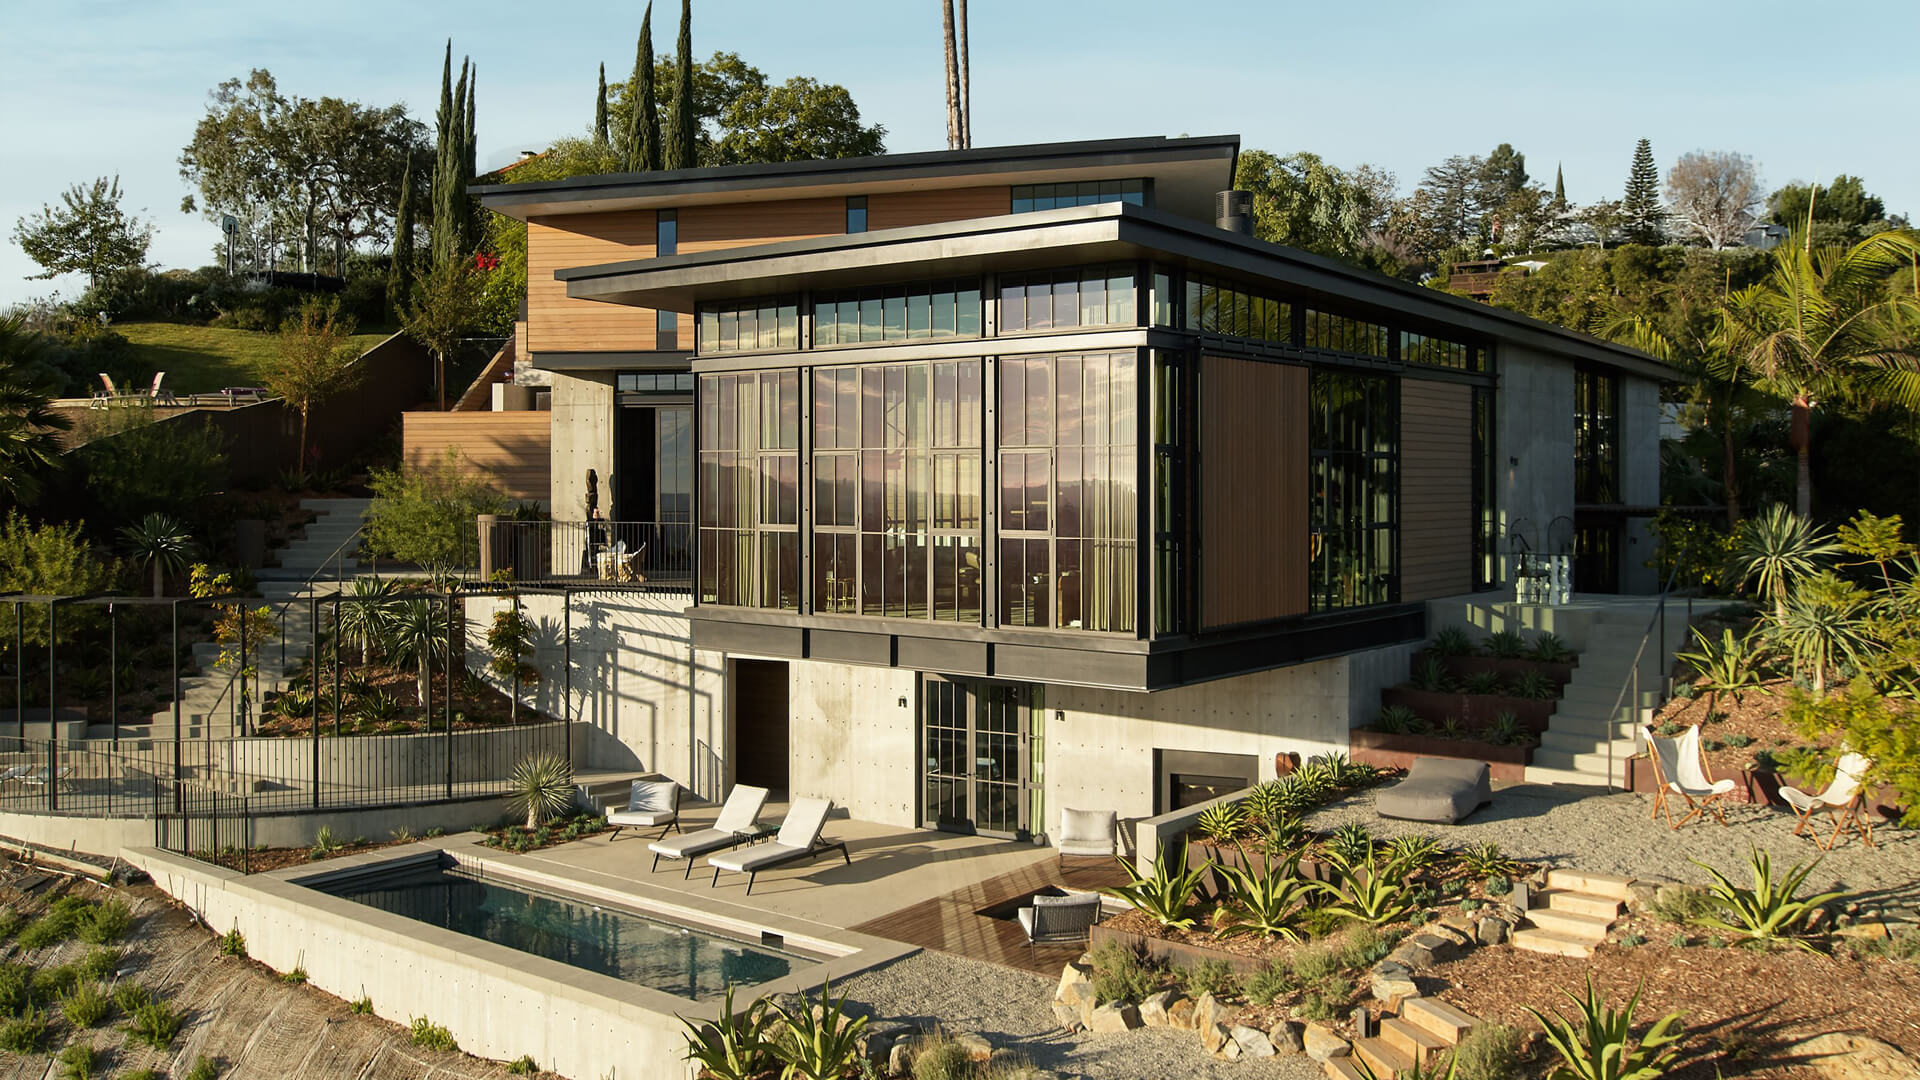 Mutuus Studio's Hollywood Hills House redefines luxurious spatial experiences